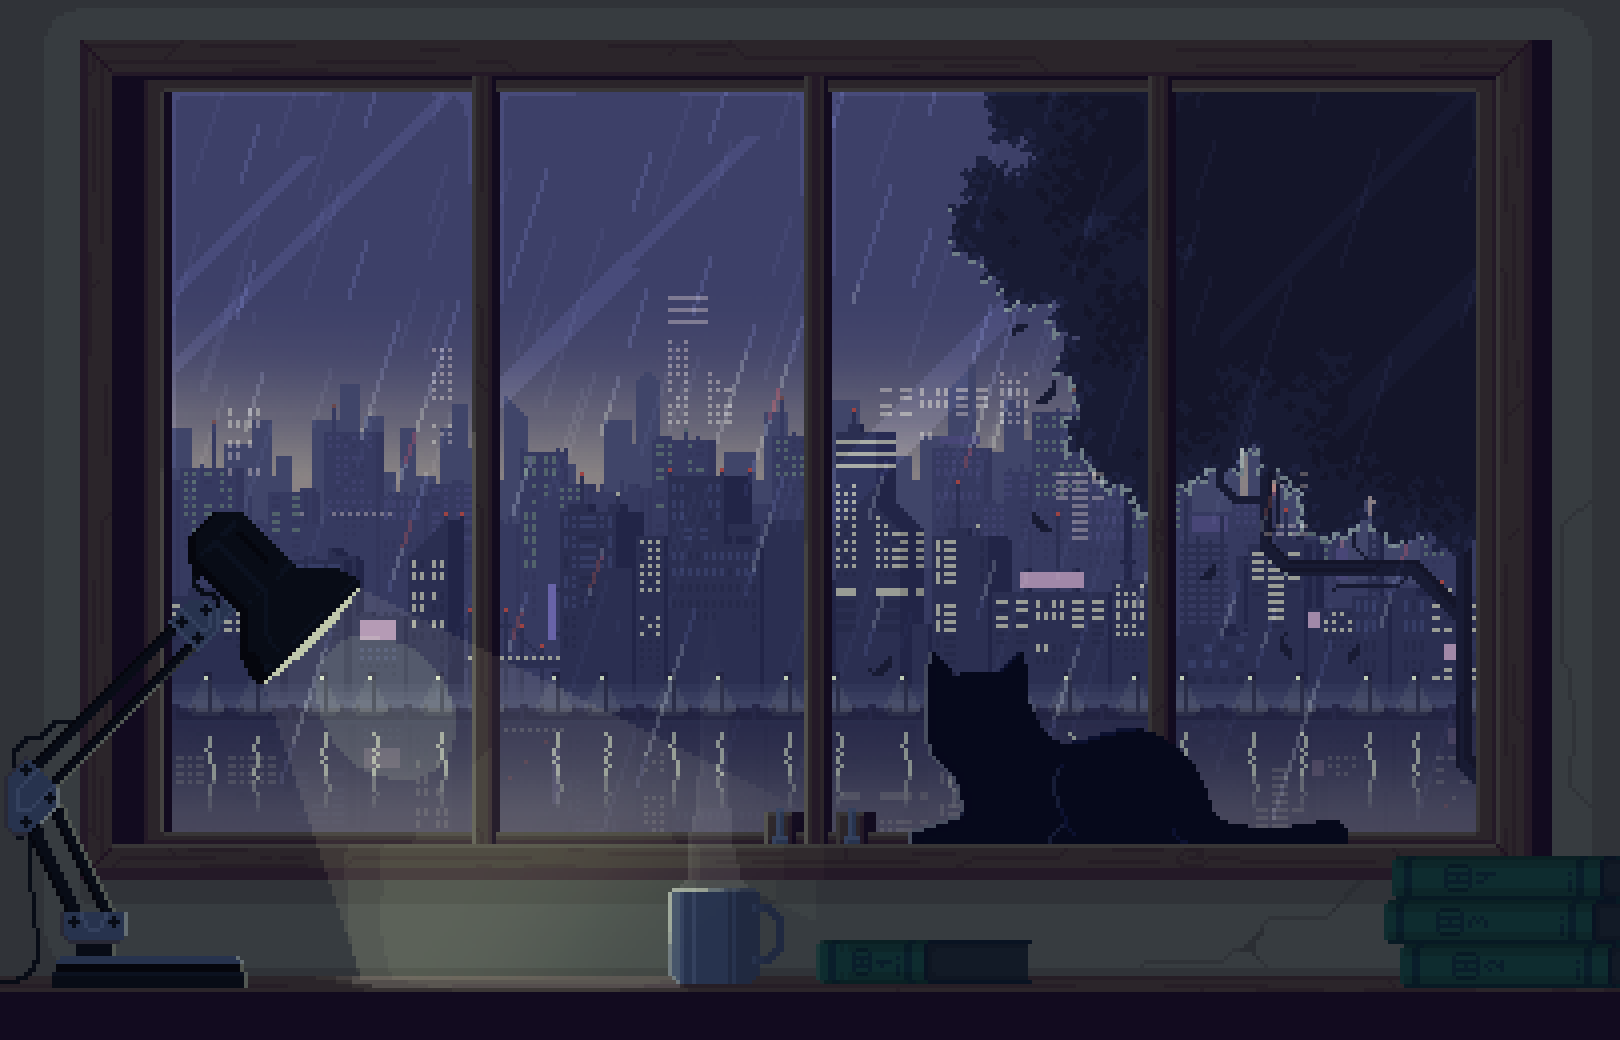 Pin By On Pixel Art Aesthetic Desktop Wallpaper Anime Scenery Wallpaper Desktop Wallpaper Art